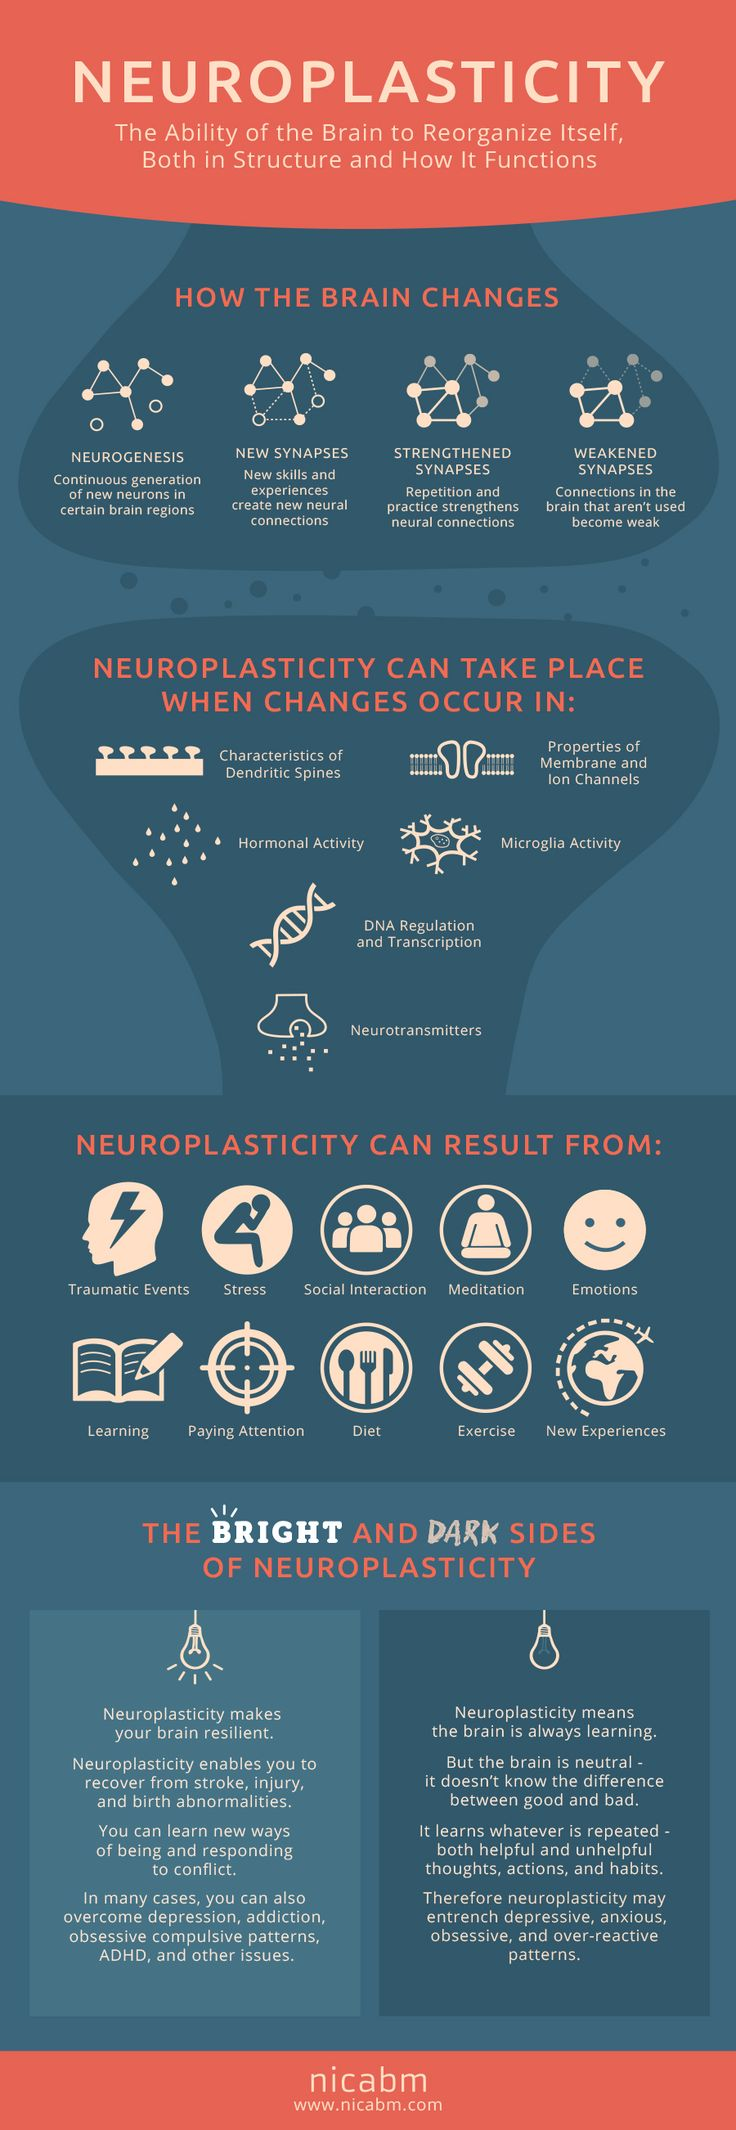 Neuroplasticity is the ability on how the brain reorganizes itself to heal. Both on structure and function.